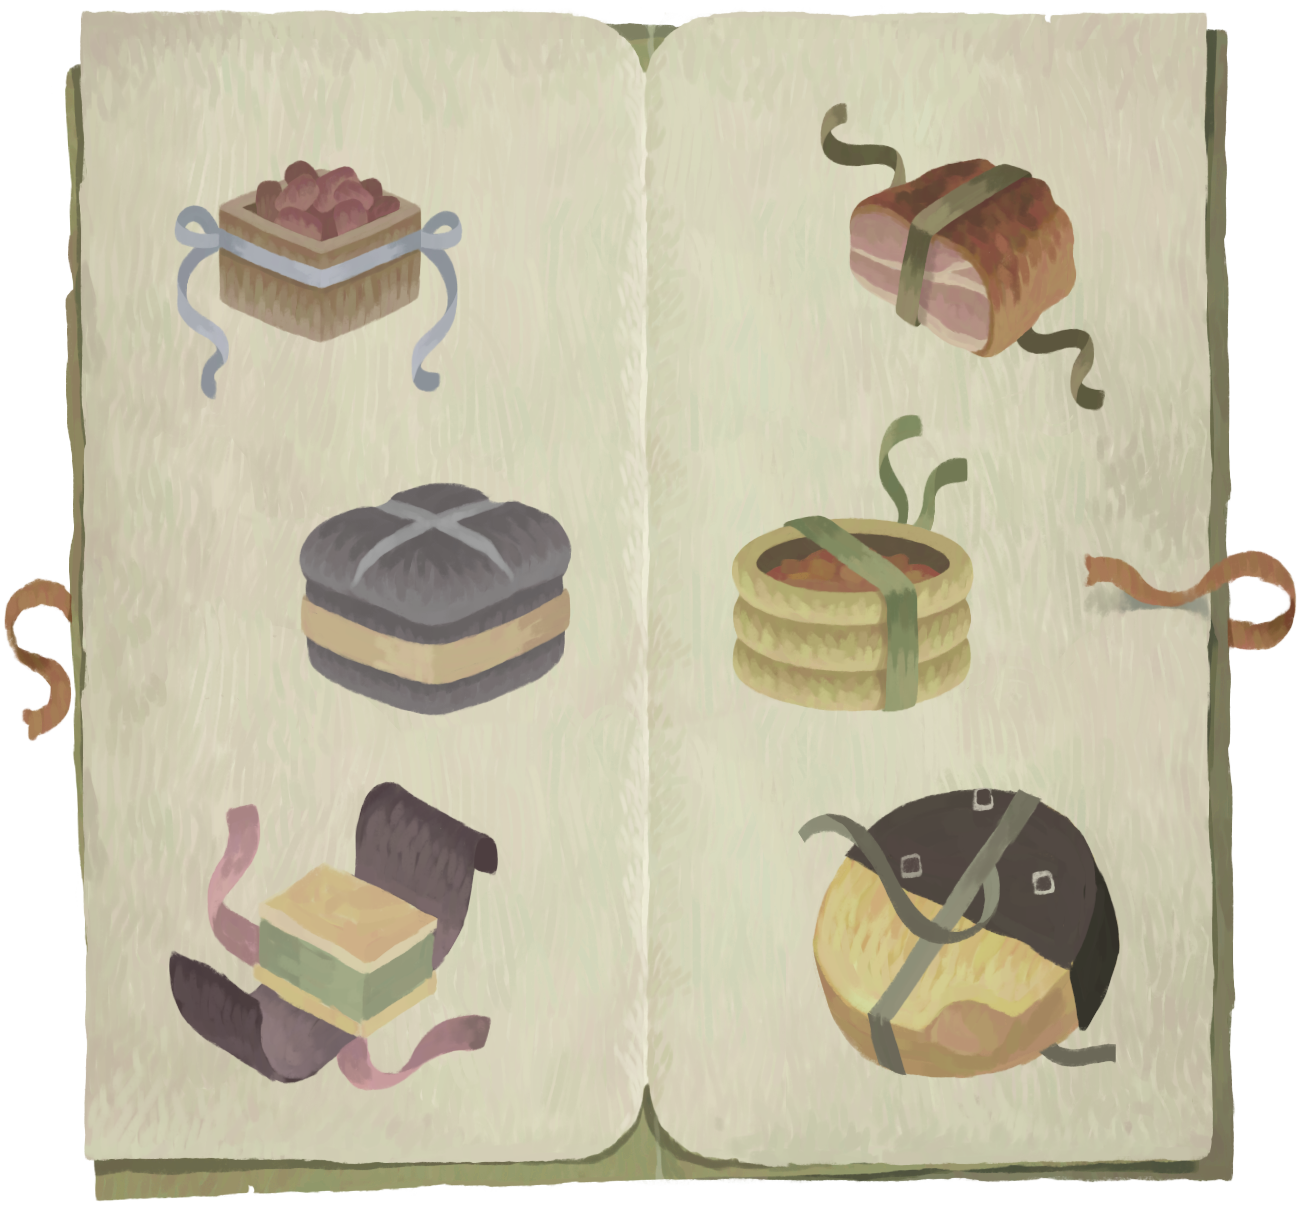 Book of Travels Story Guide + Walkthrough - Overview - Food and drink - B63A4DA